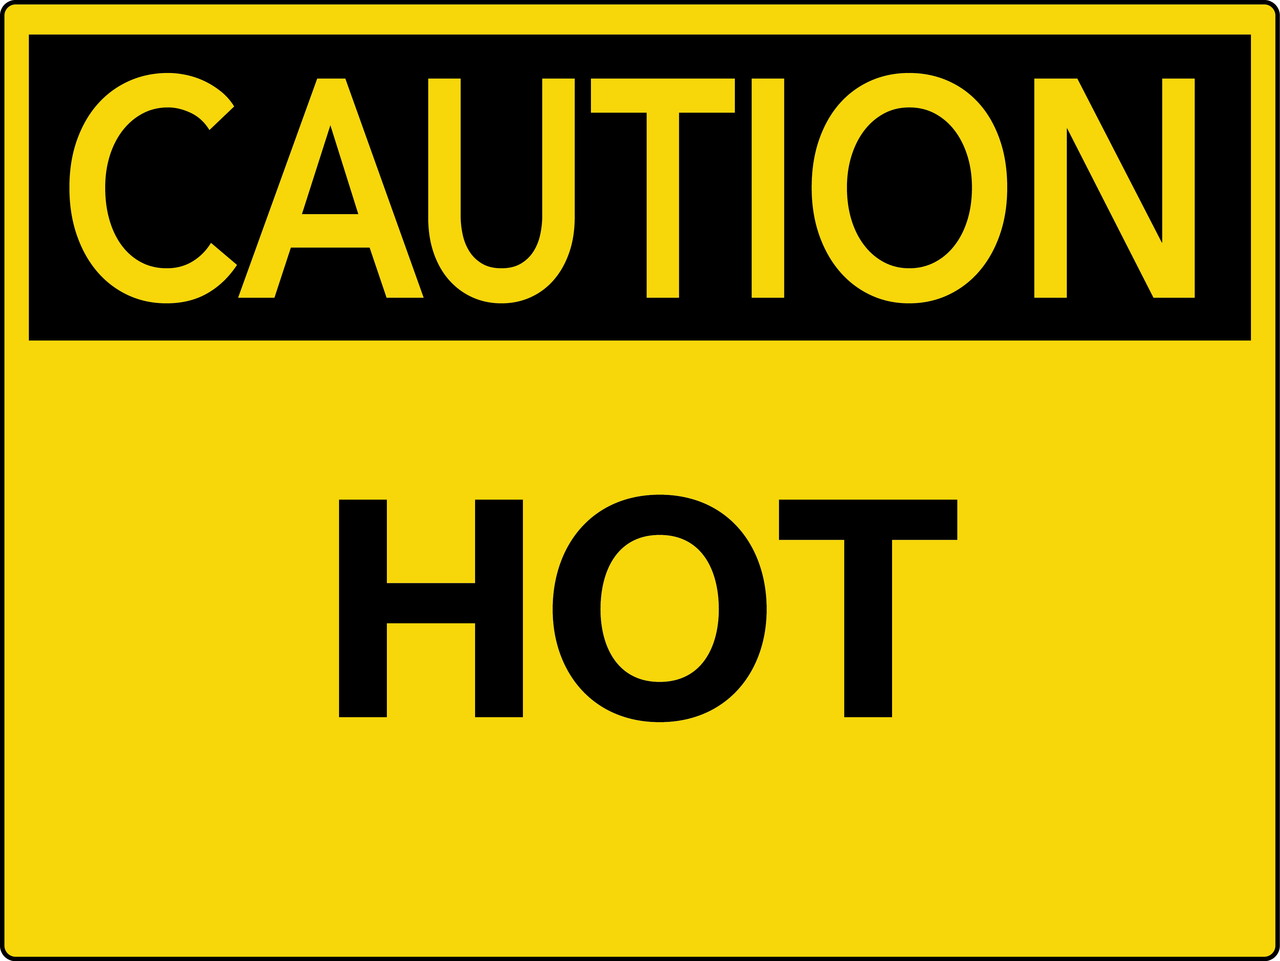 Caution Hot Wall Sign Phs Safety